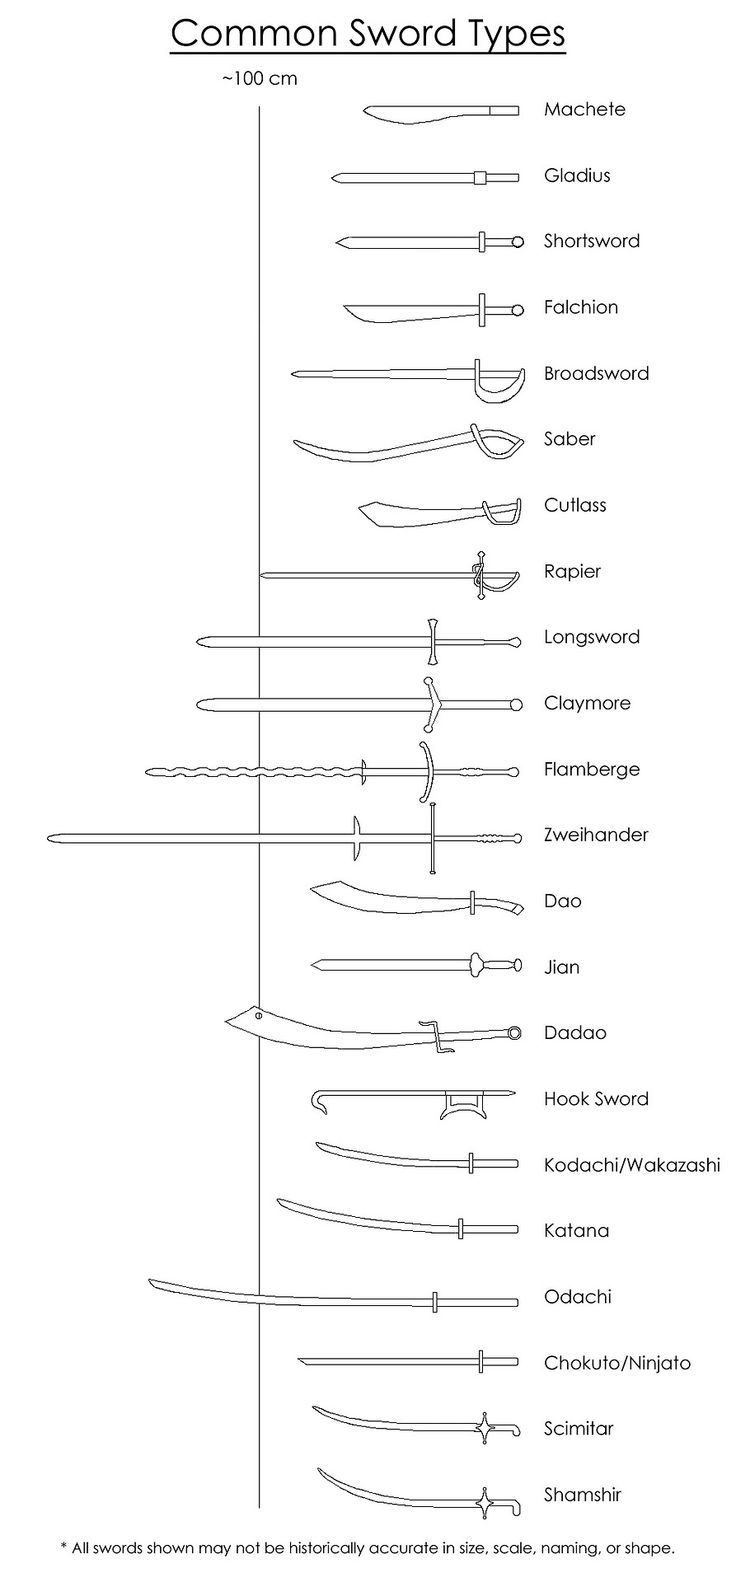 common sword types- Amazing. Do you know how wonderfully amazing this is. Pinning this to all my character boards: